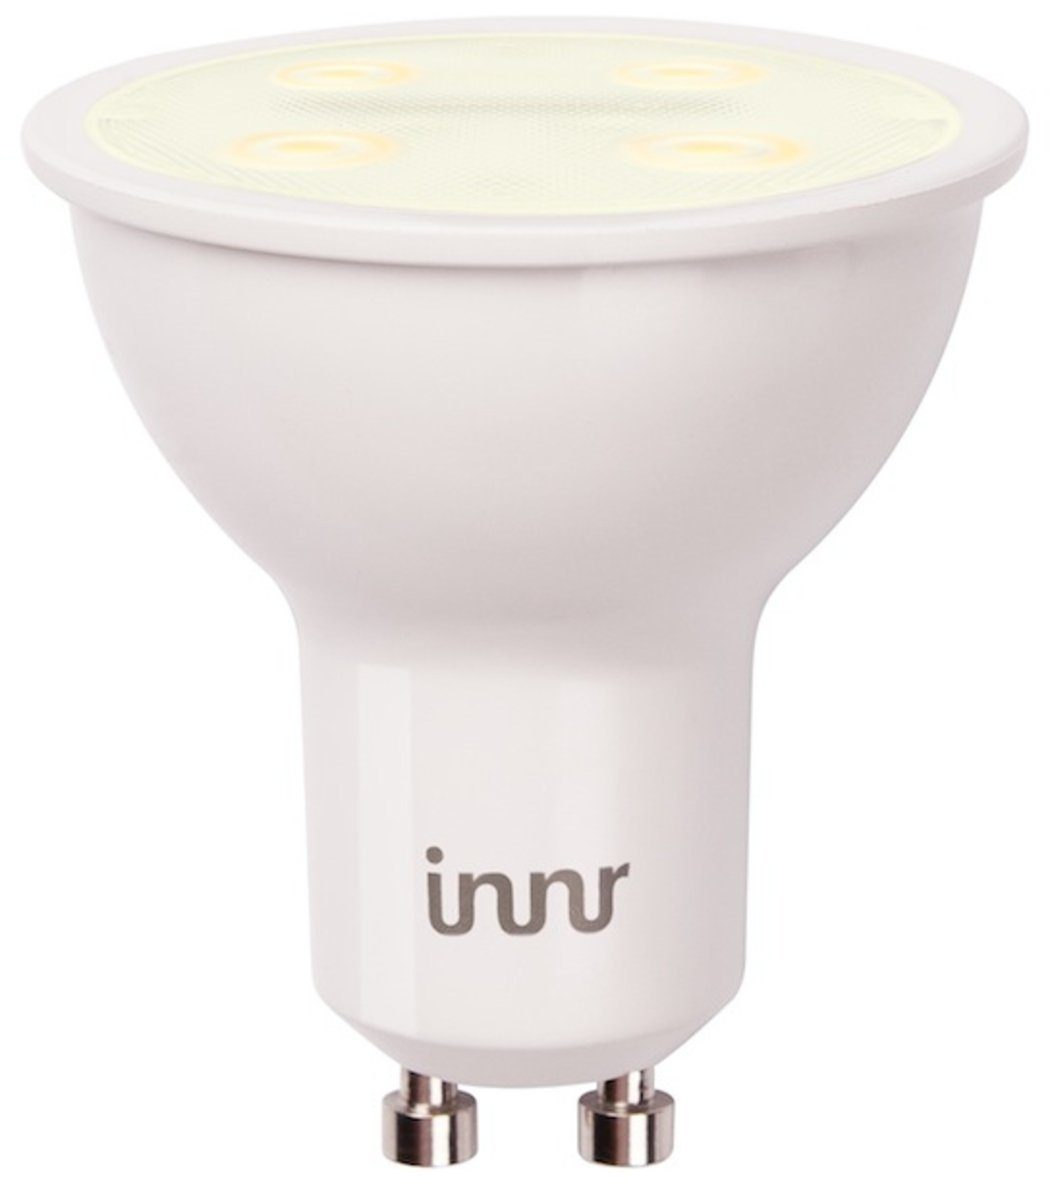 innr Smart Home Zubehör »LED GU10 Spot White RS 125 4er Pack«